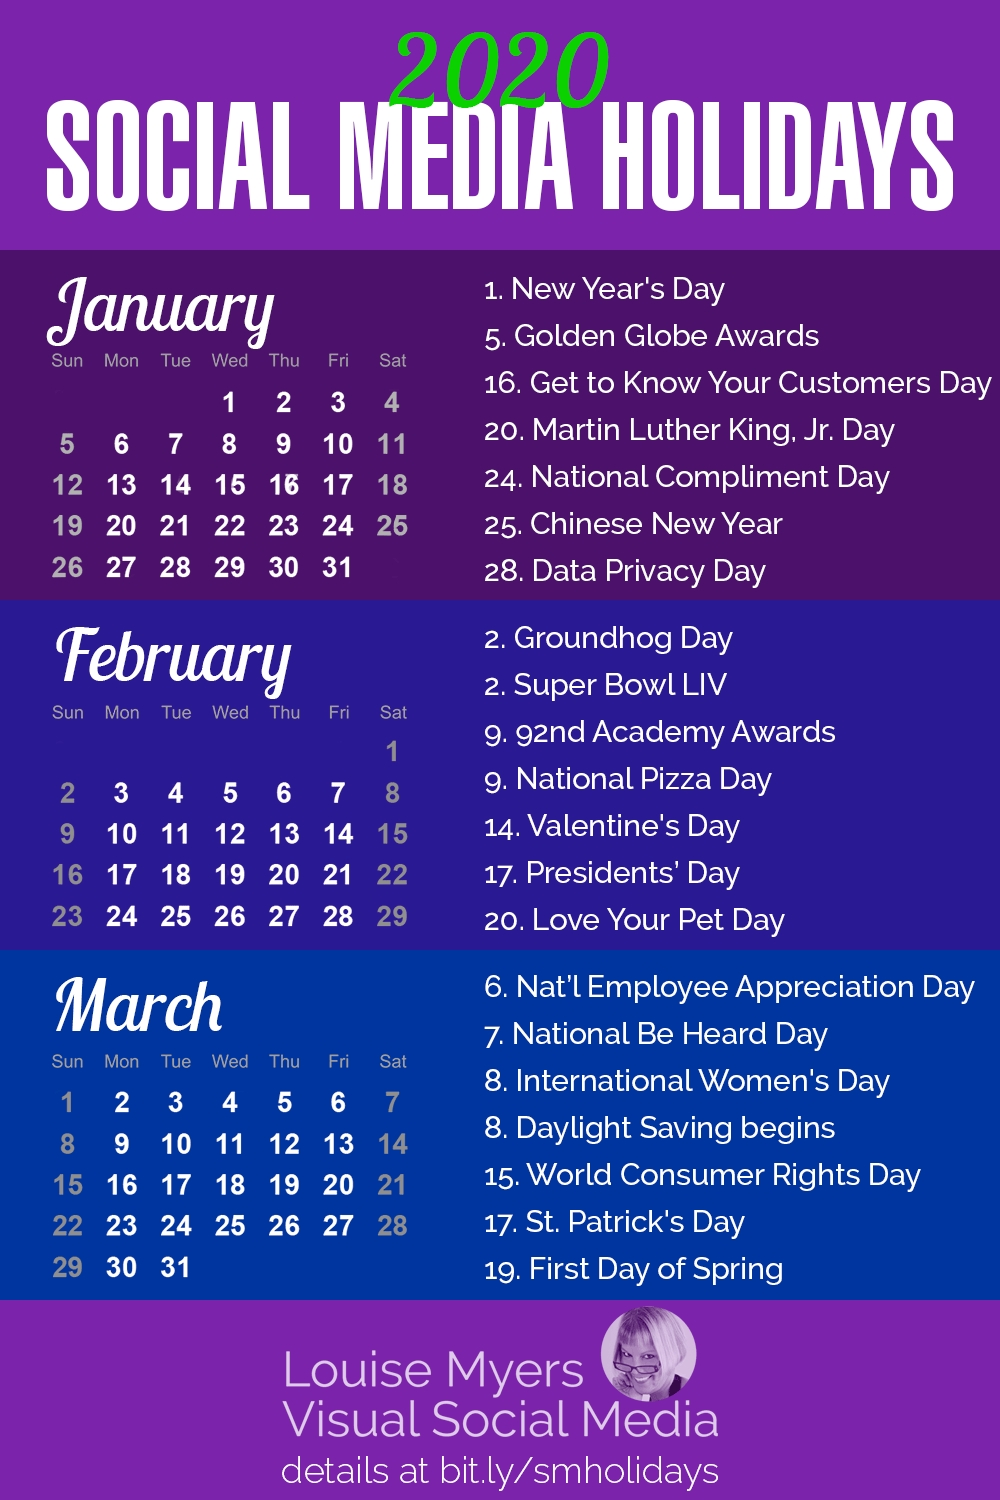 84 Social Media Holidays You Need In 2020: Indispensable! with Calendar Of Special Days 2020